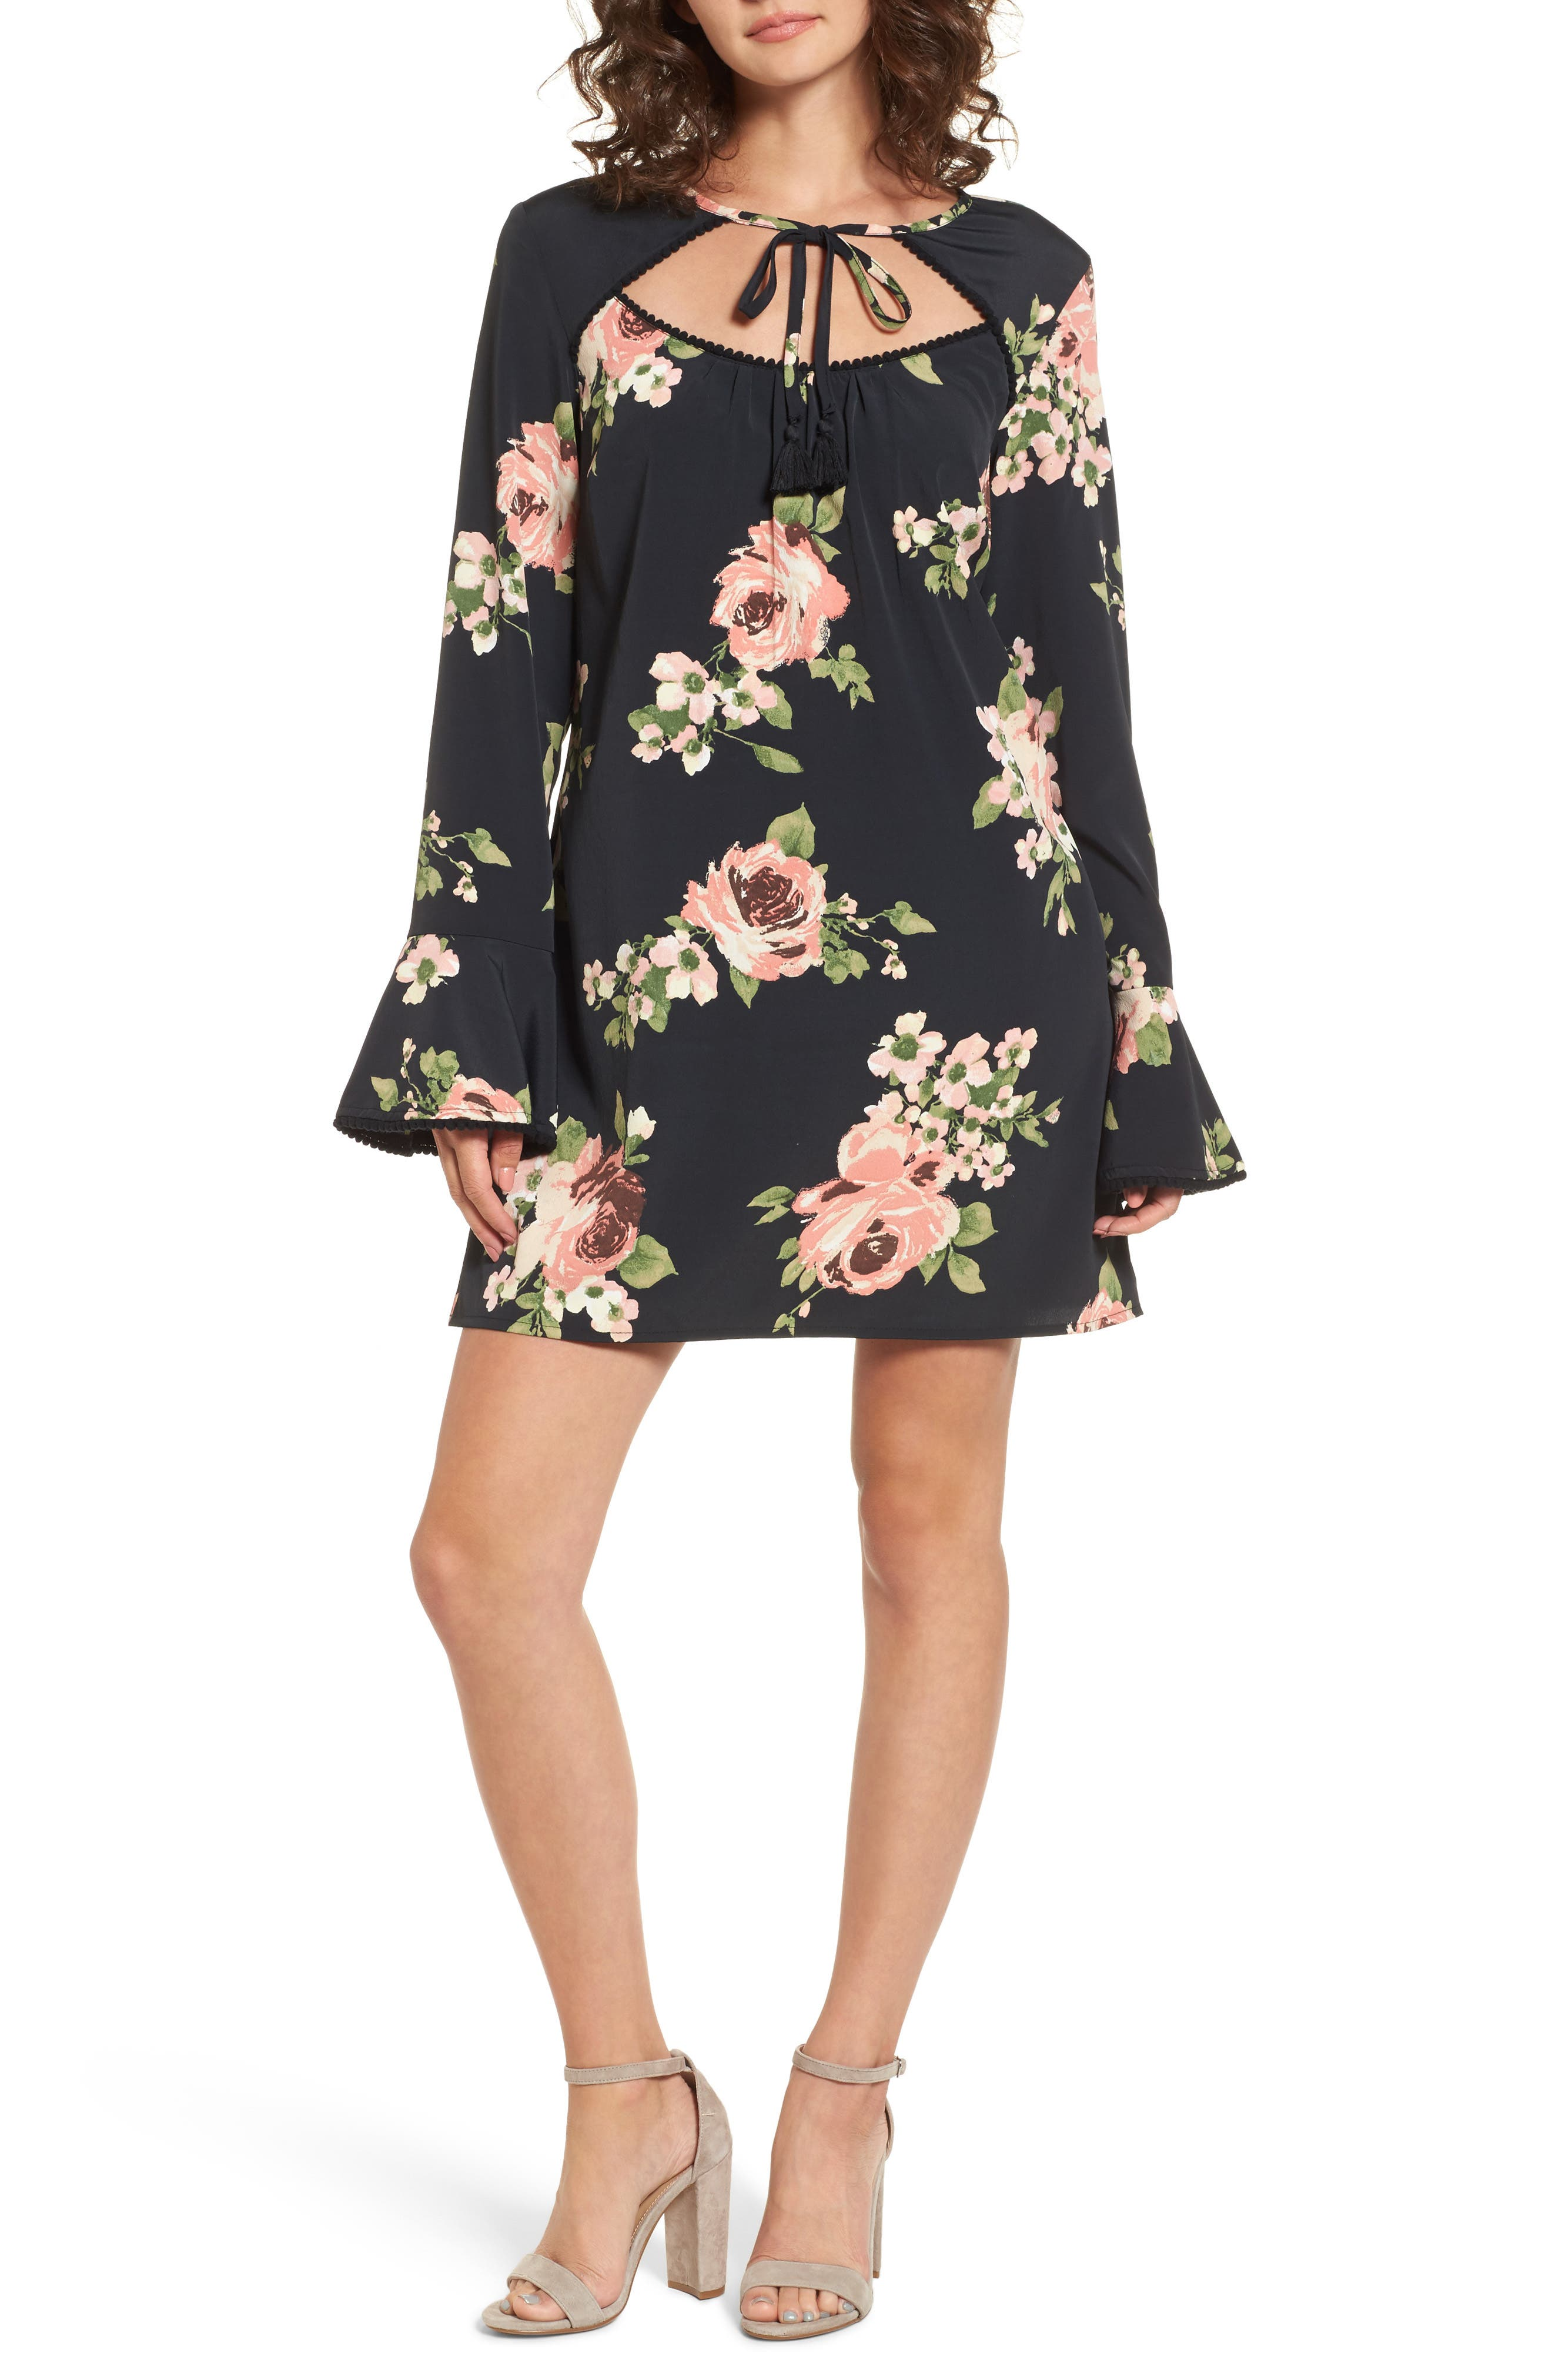 Band of Gypsies Keyhole Floral Dress